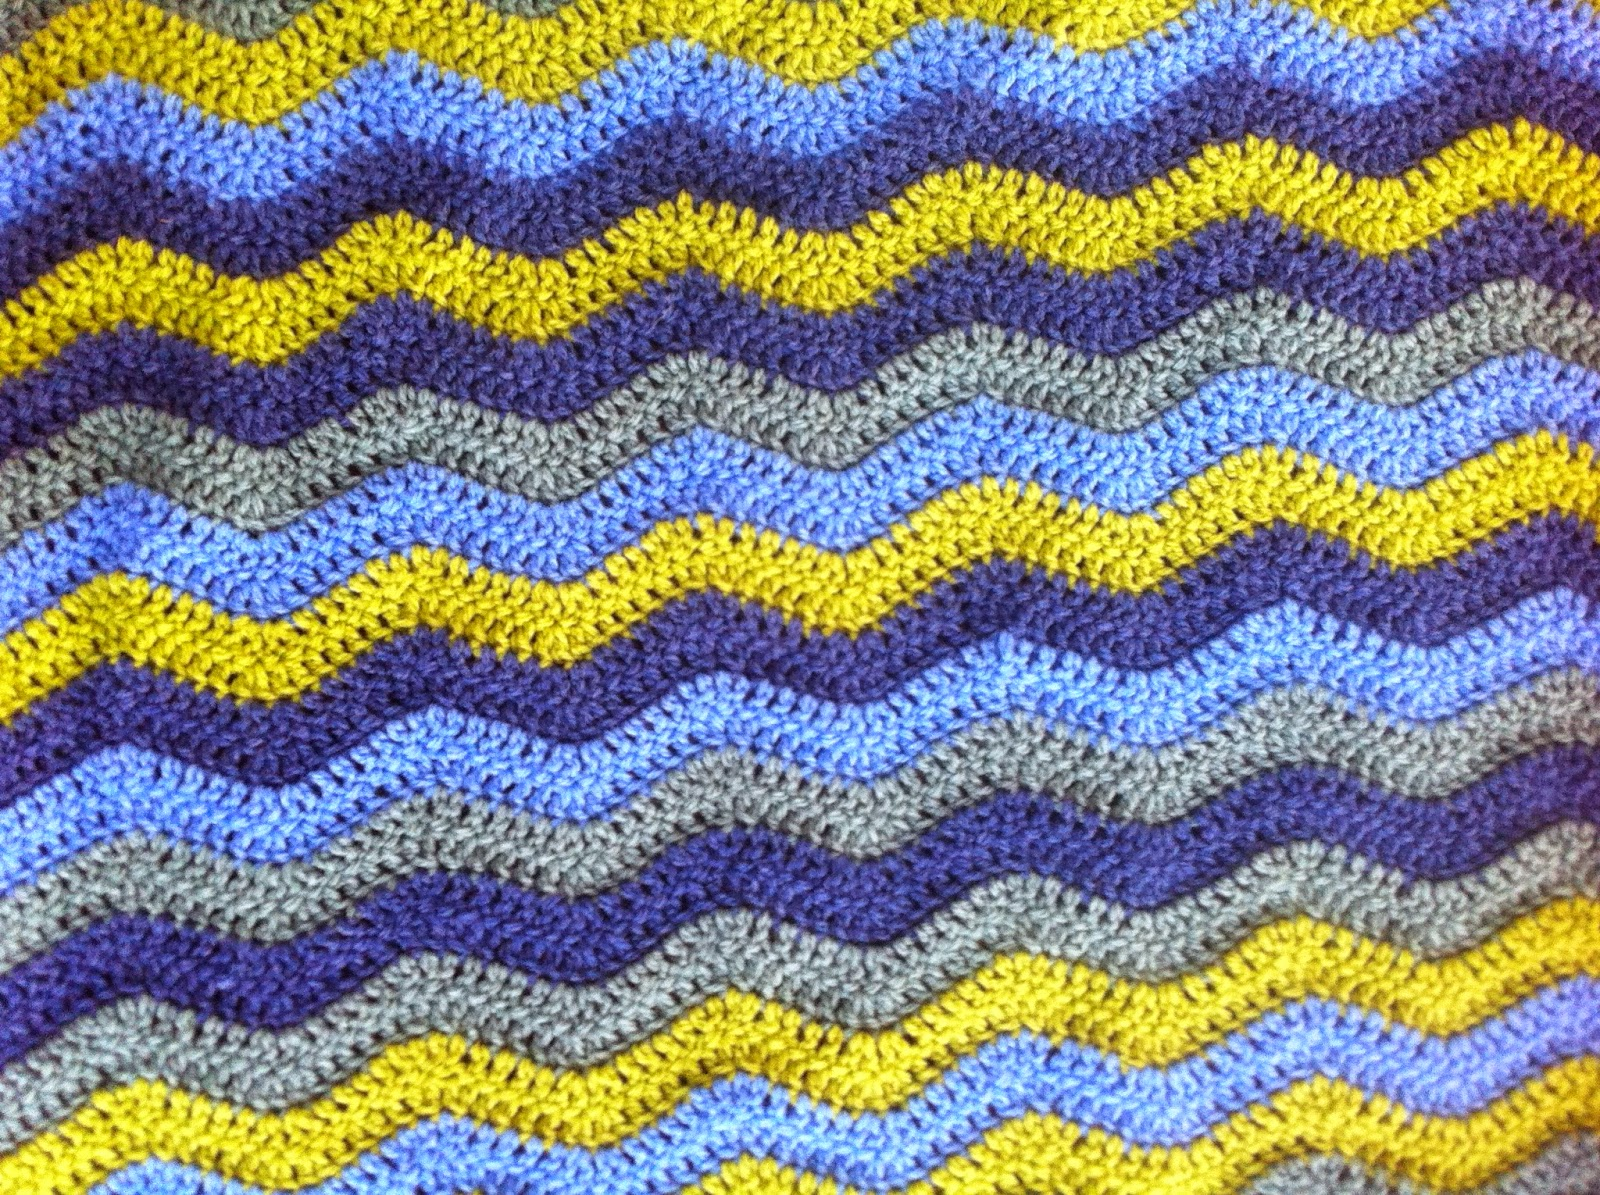 Crochet ripple blanket rue du belvedere i started this ripple blanket way back in october and i can finally say its done i cant believe how long its taken but i love it bankloansurffo Images